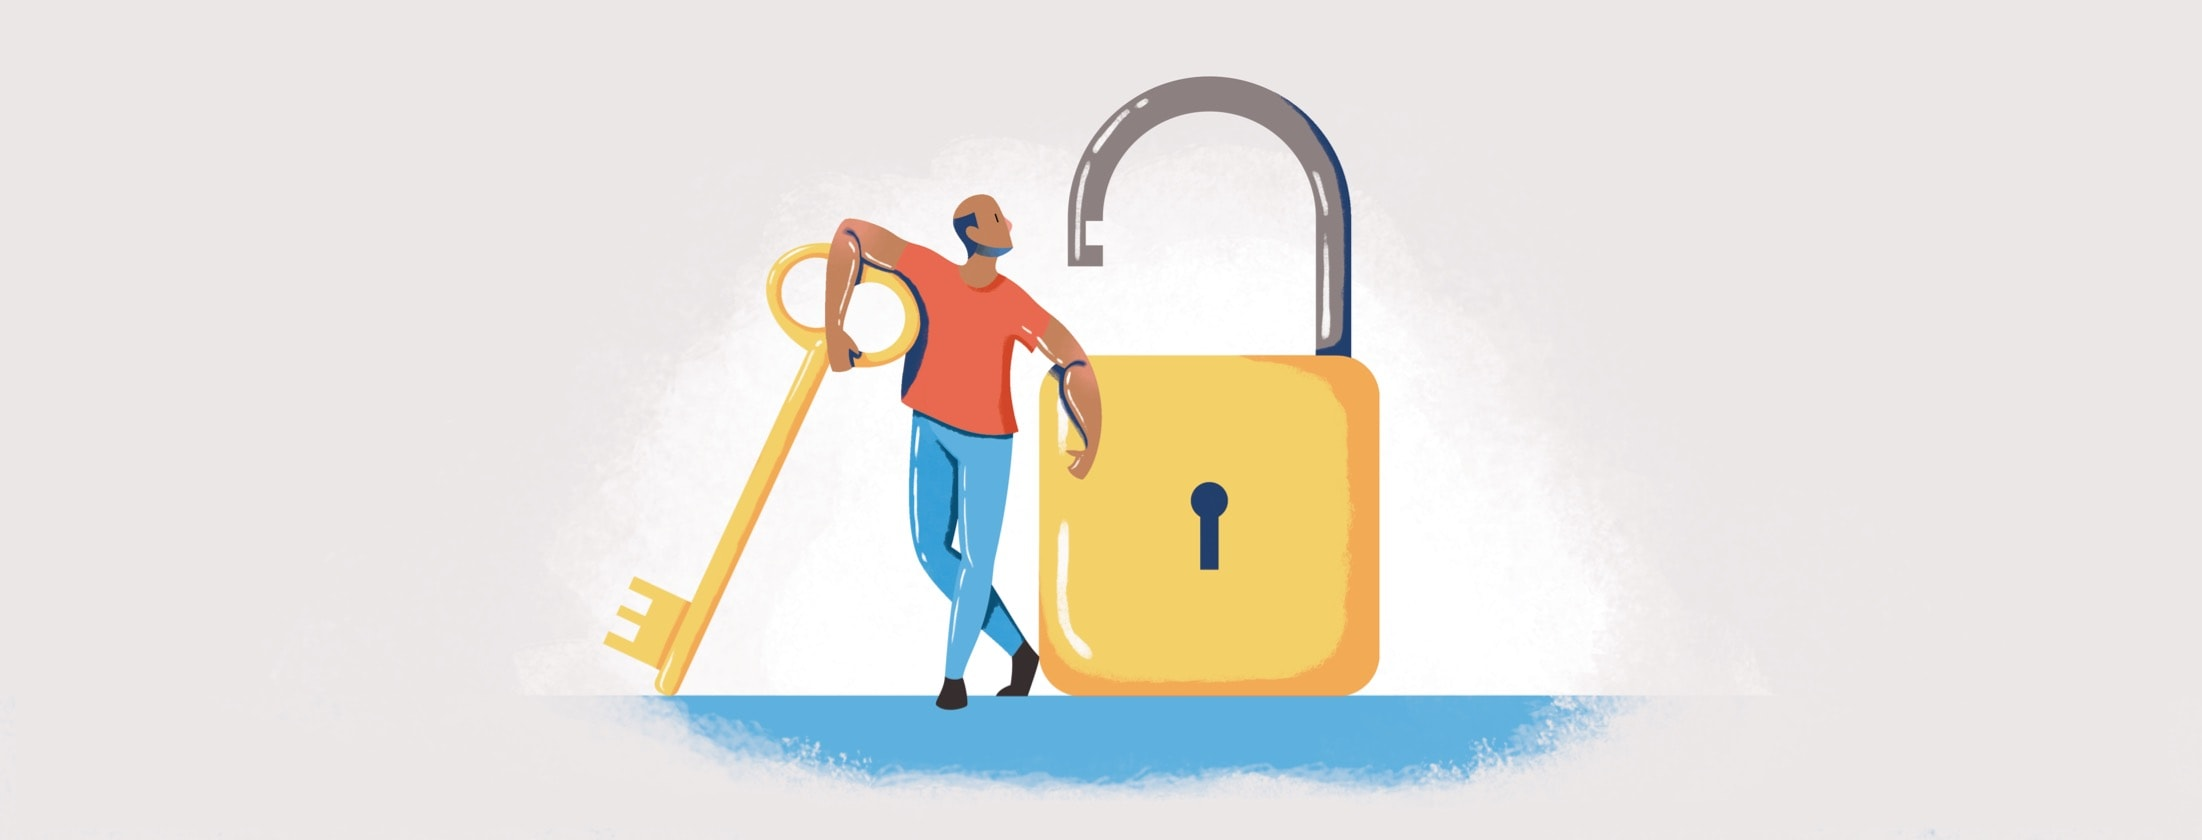 A man with a key to unlock a giant lock